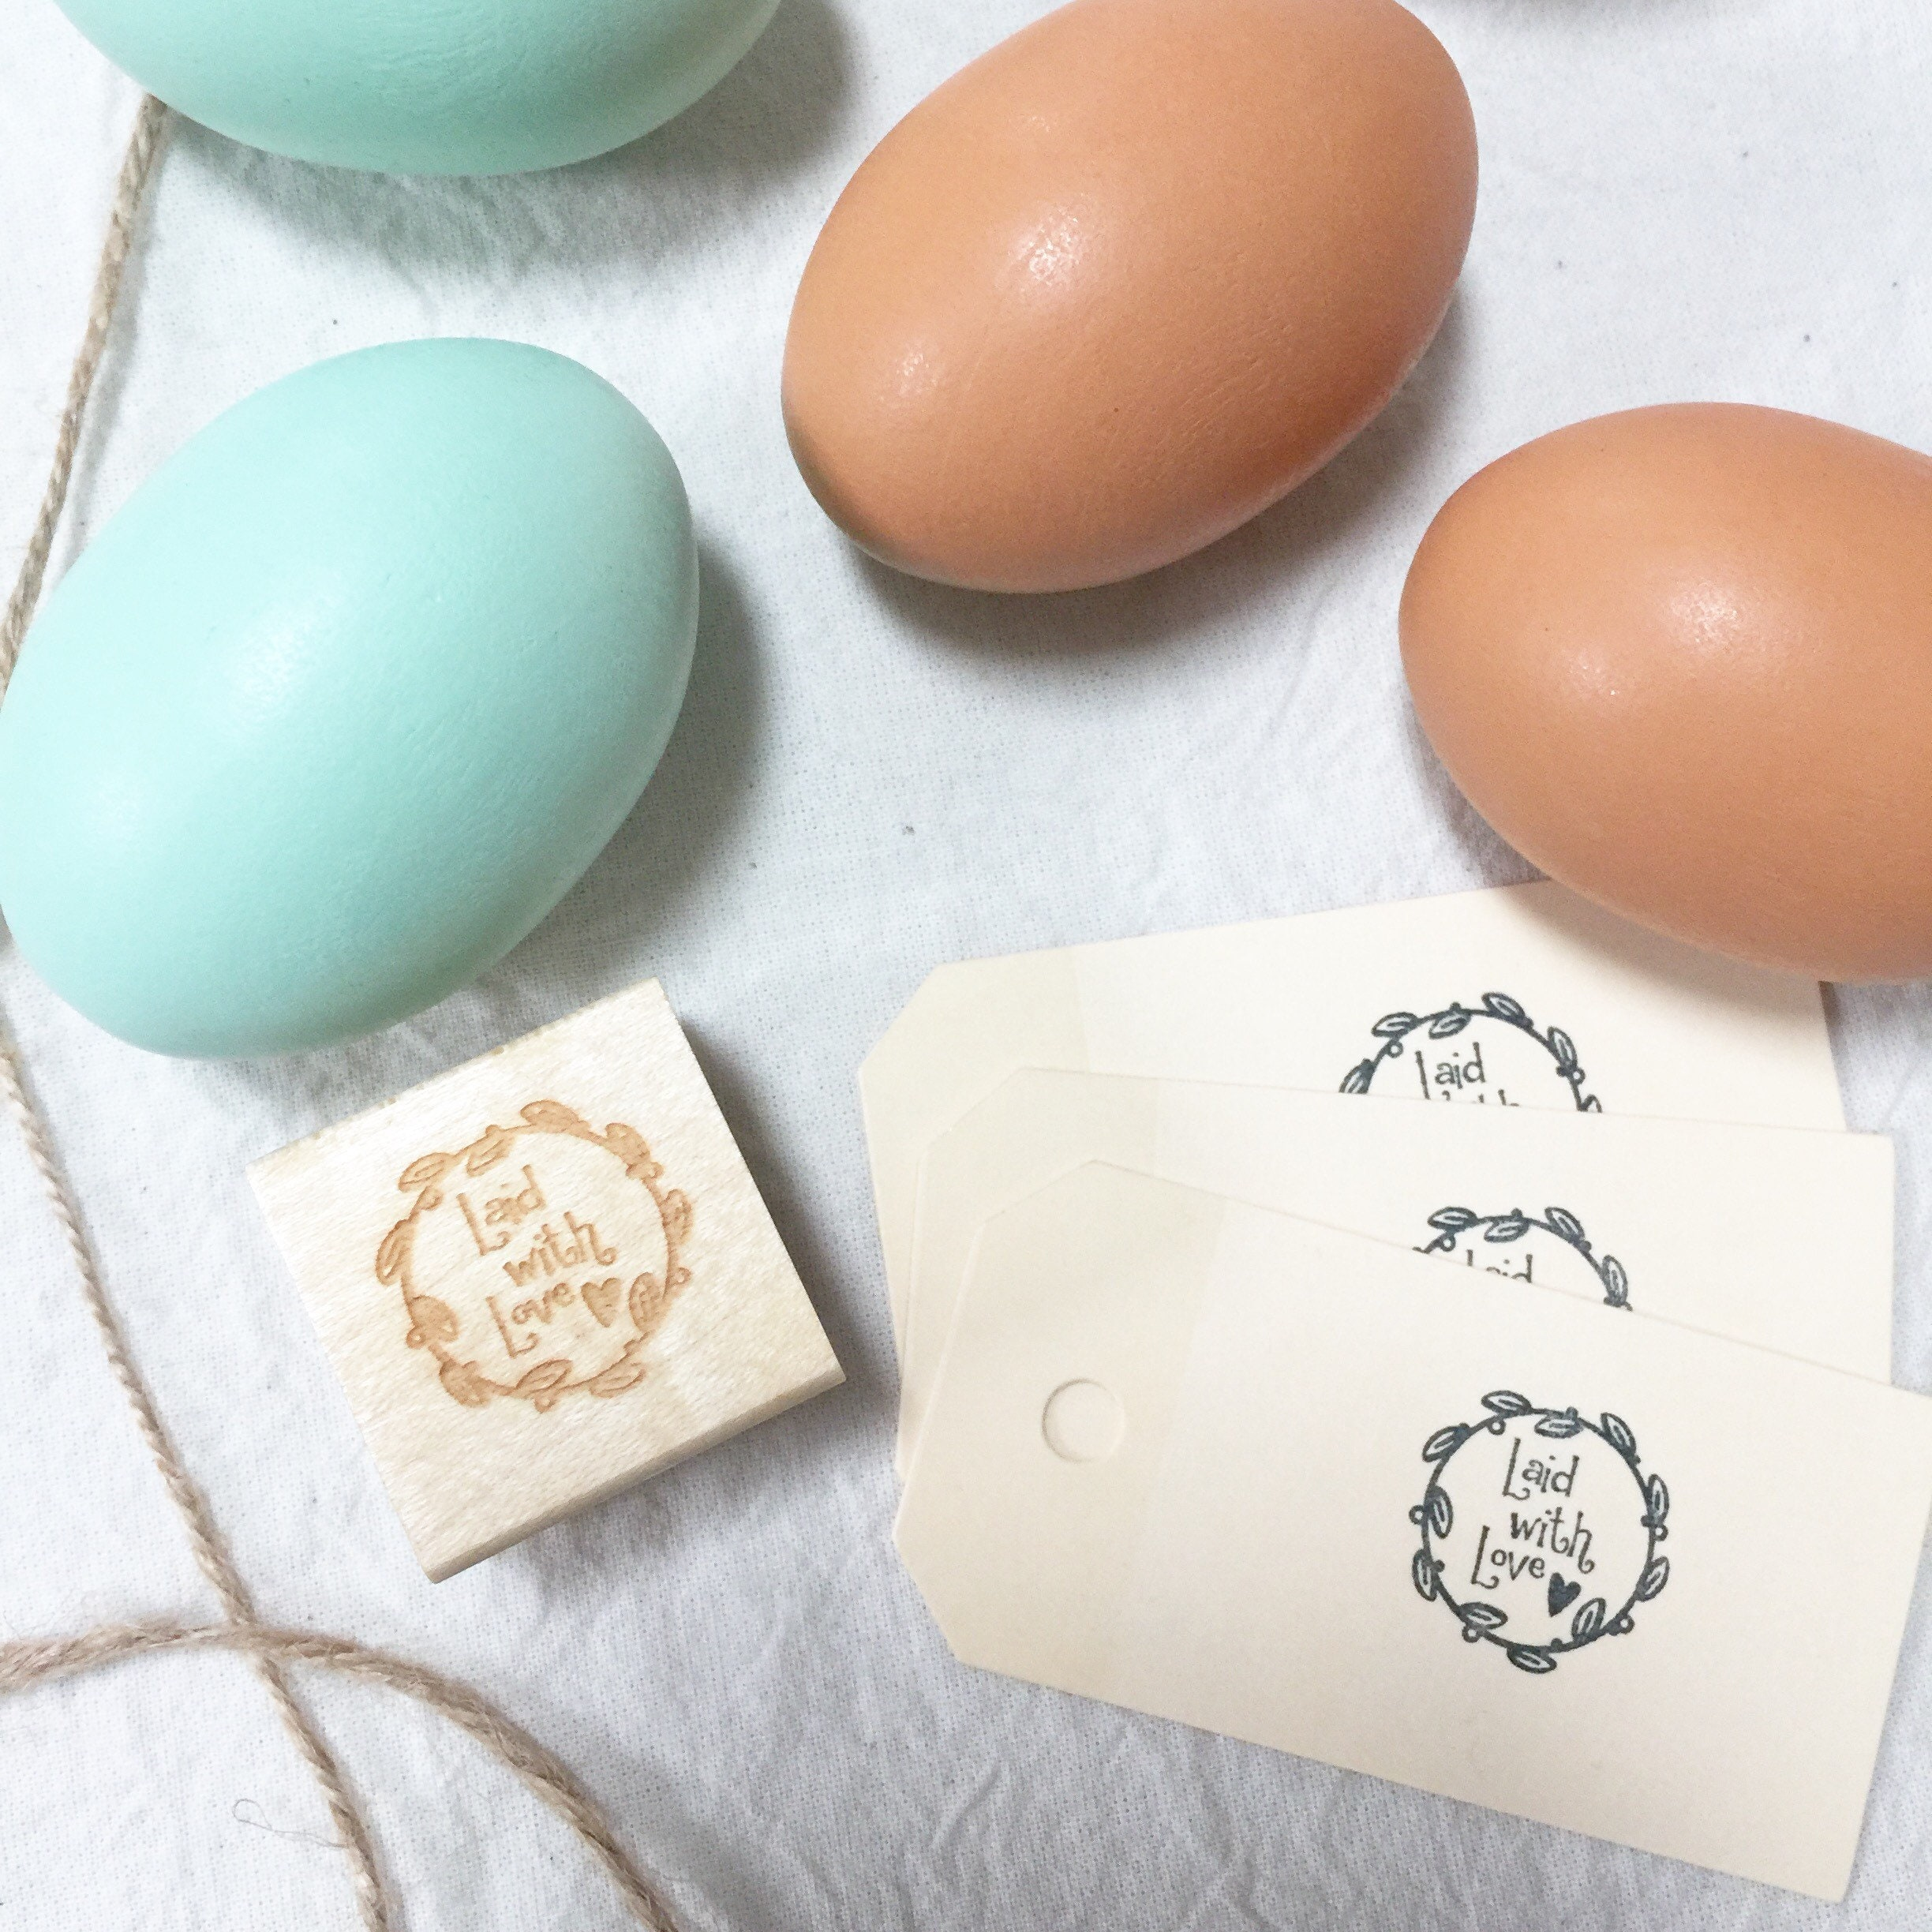 Egg Stamp Egg Carton Stamp